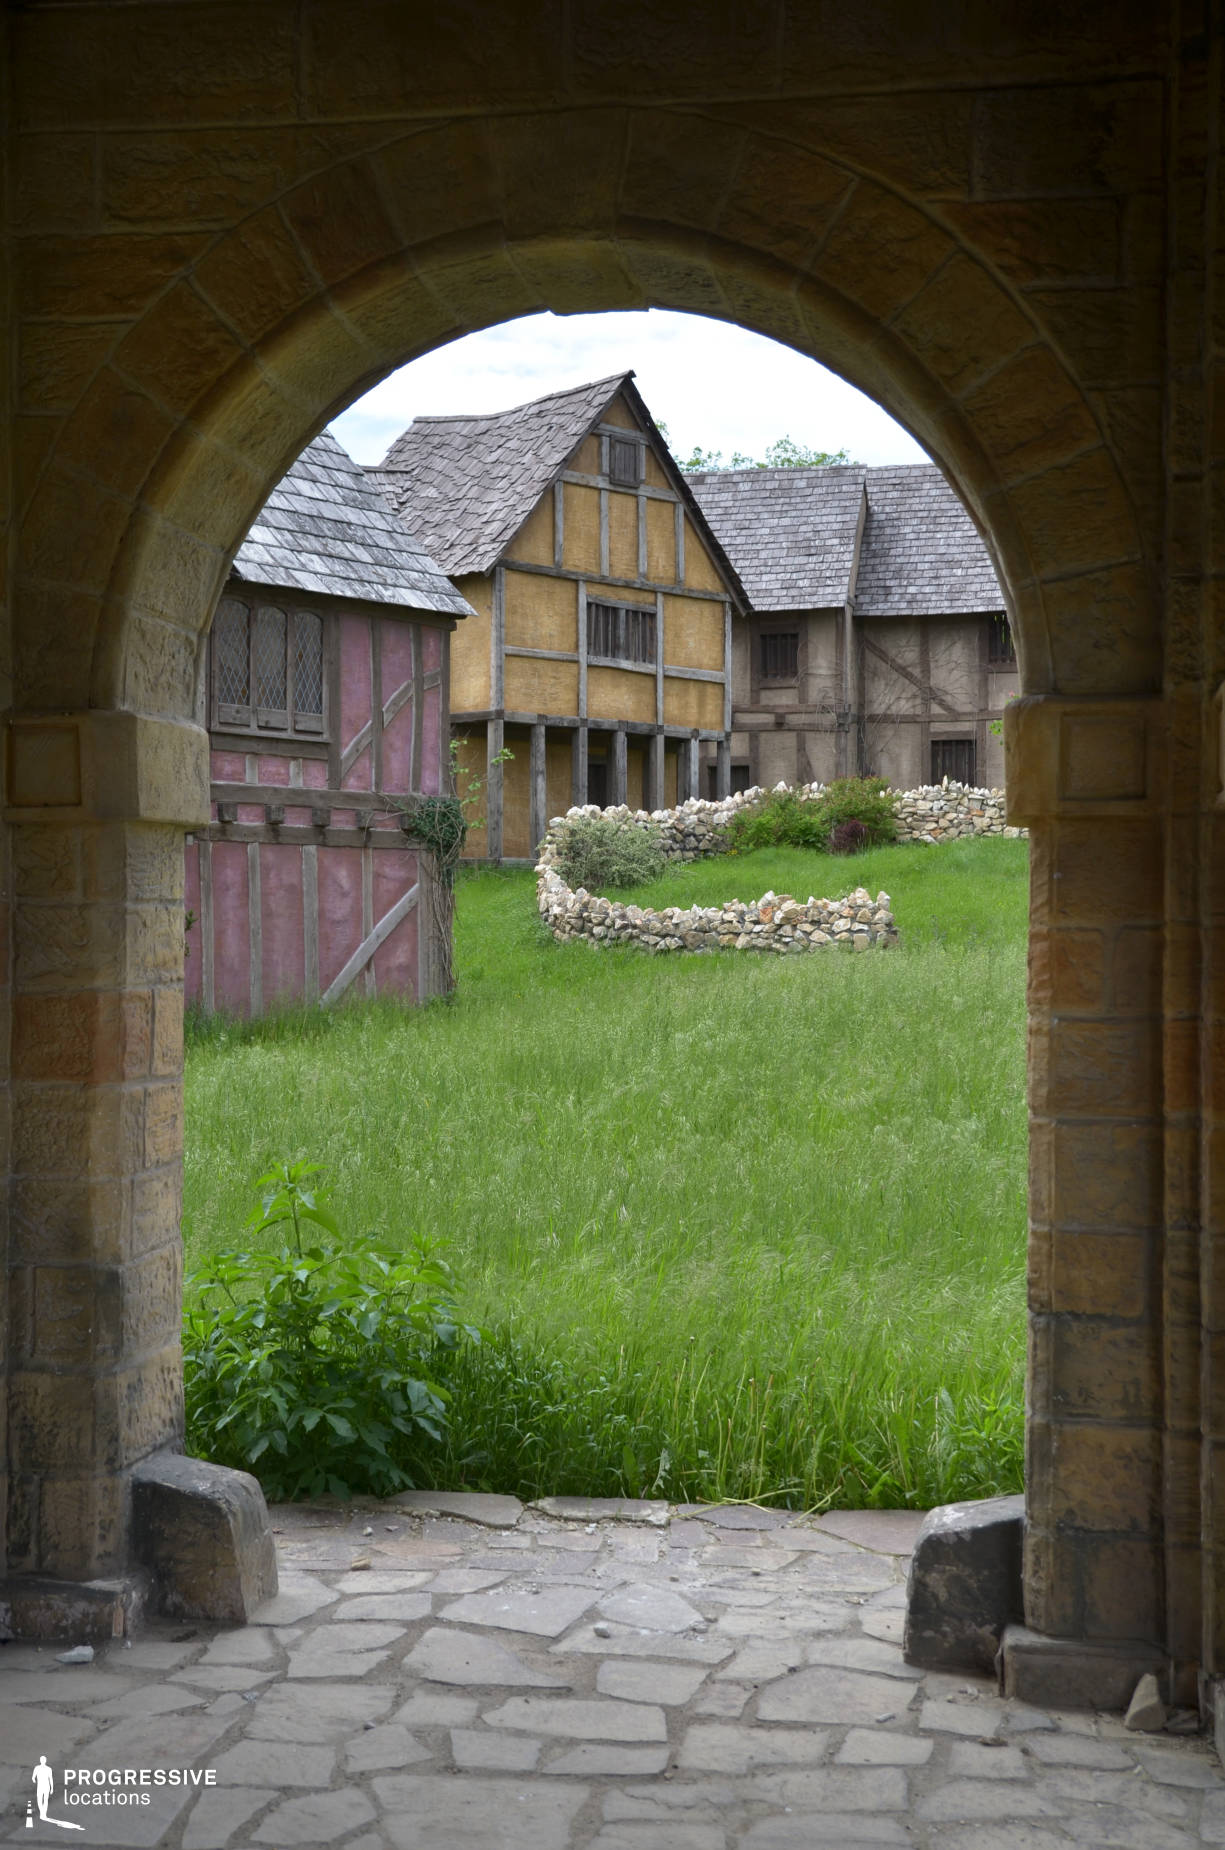 British Medieval Village Backlot: Arcade %26 Wooden Structure Houses